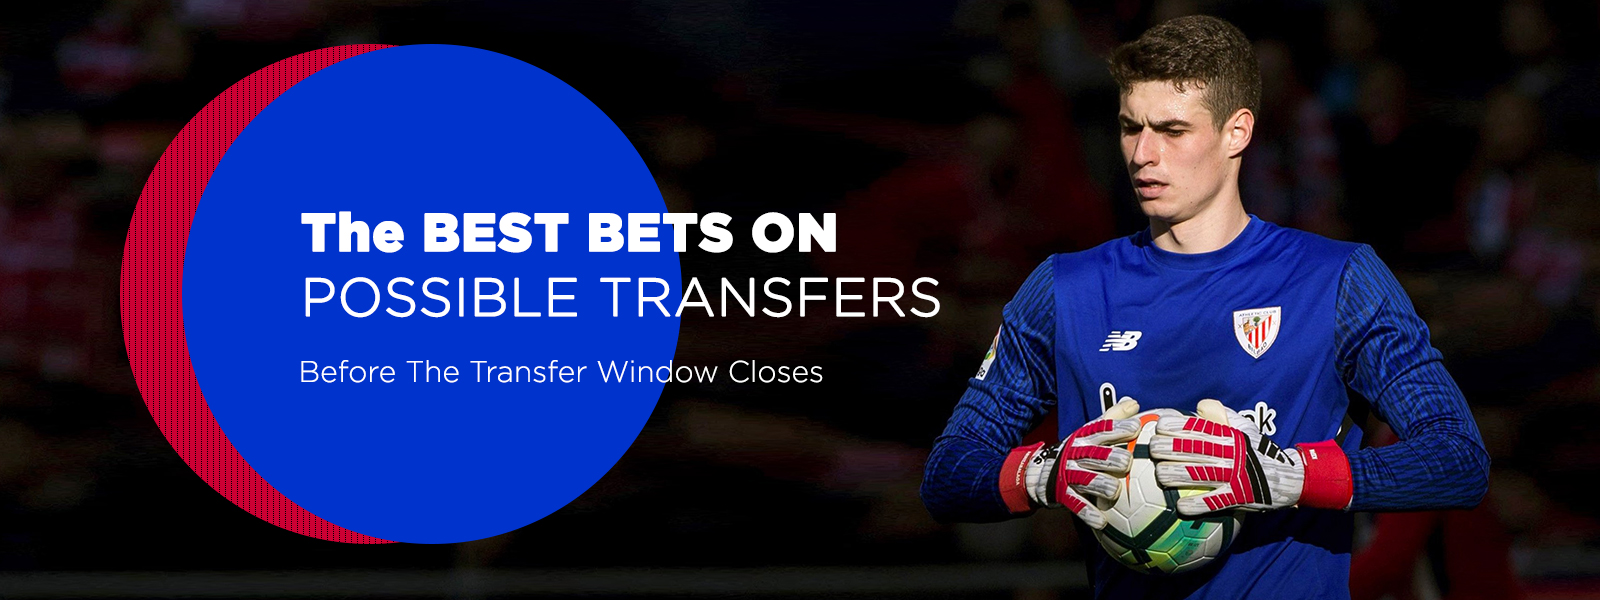 Best Bets On Possible Transfers Before The Transfer Window Closes